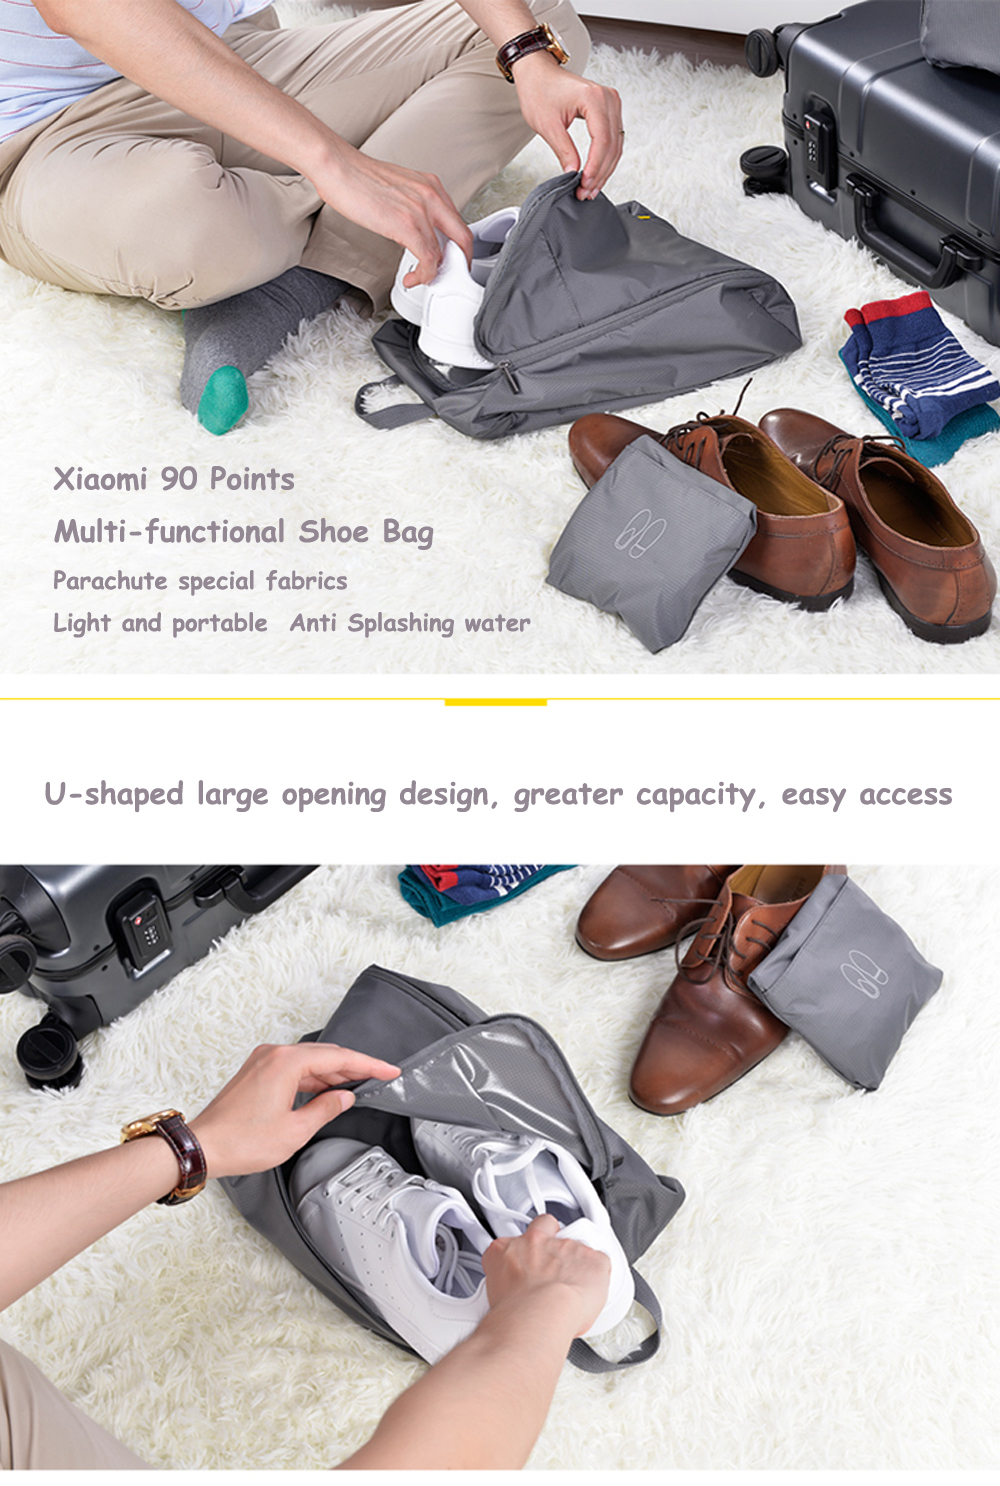 90 Points Multifunctional Shoe Bag